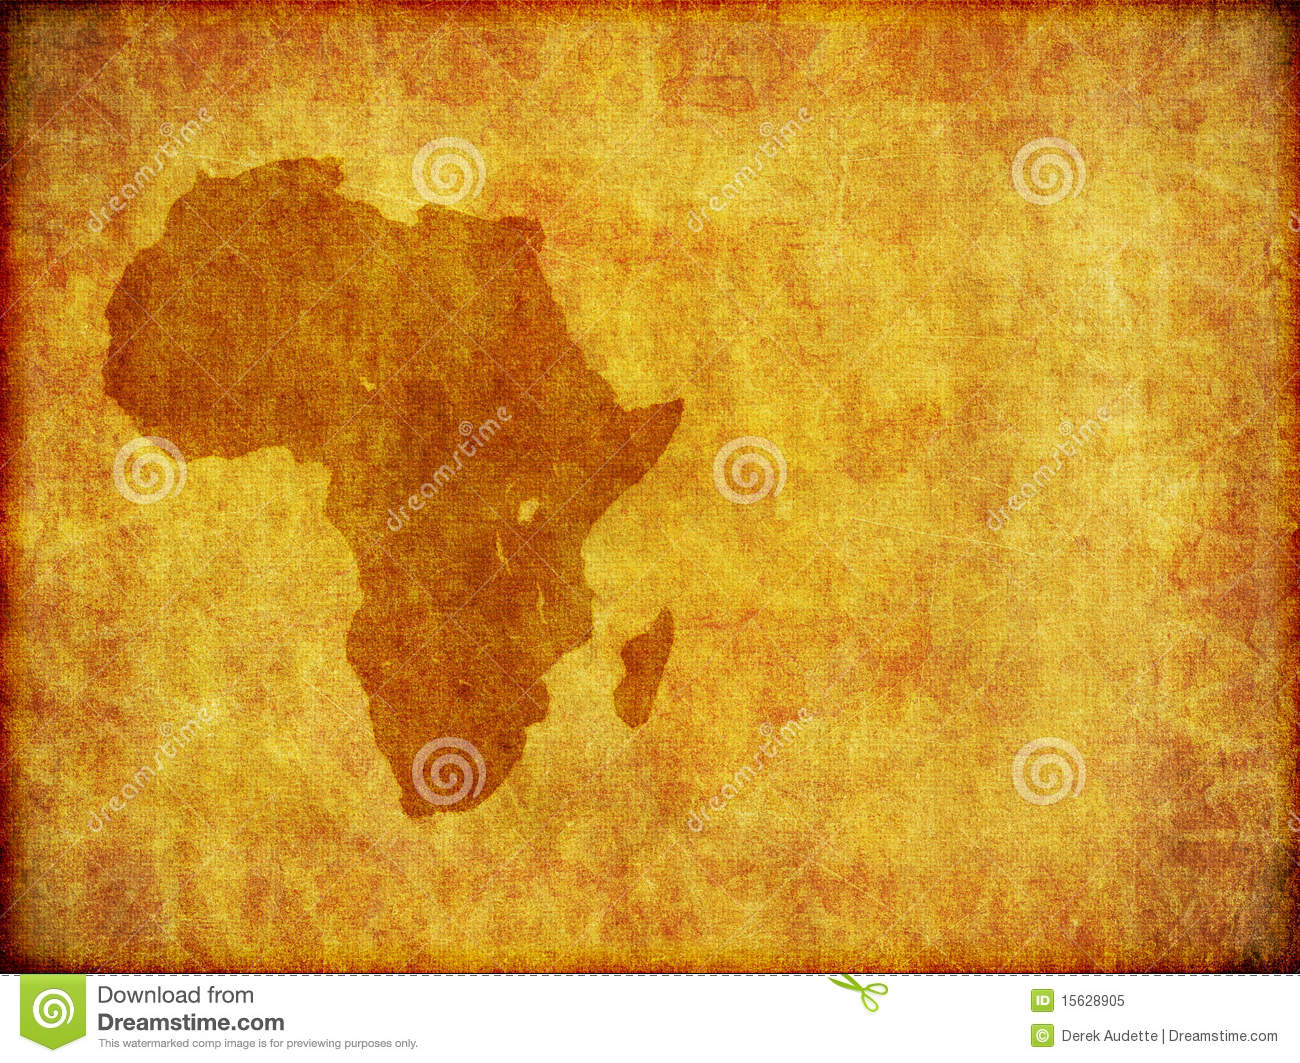 African Continent Grunge Background Graphic Royalty Free ... Golf Ball On Tee Clipart